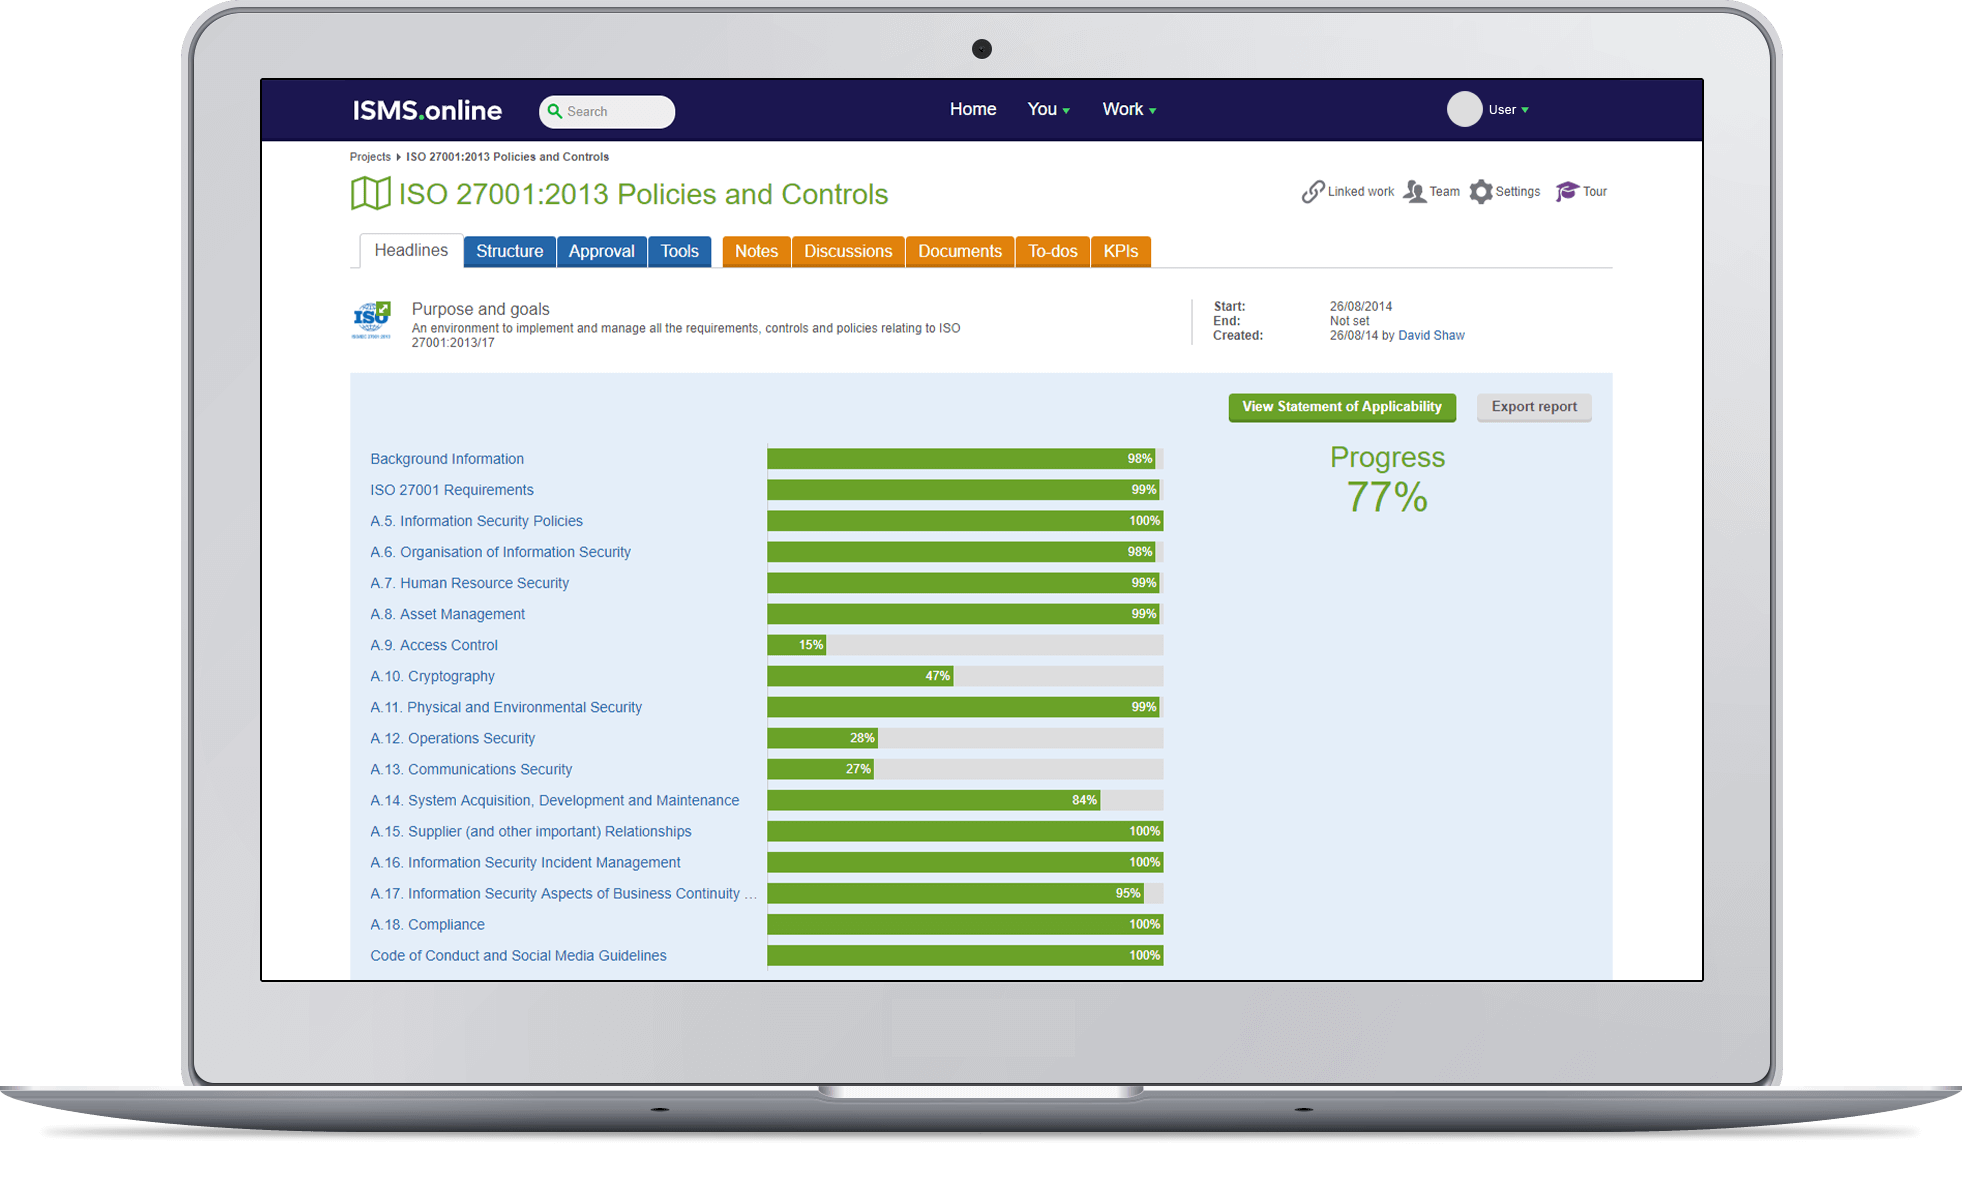 A screen shot showing the policies and controls overview on ISMS.online